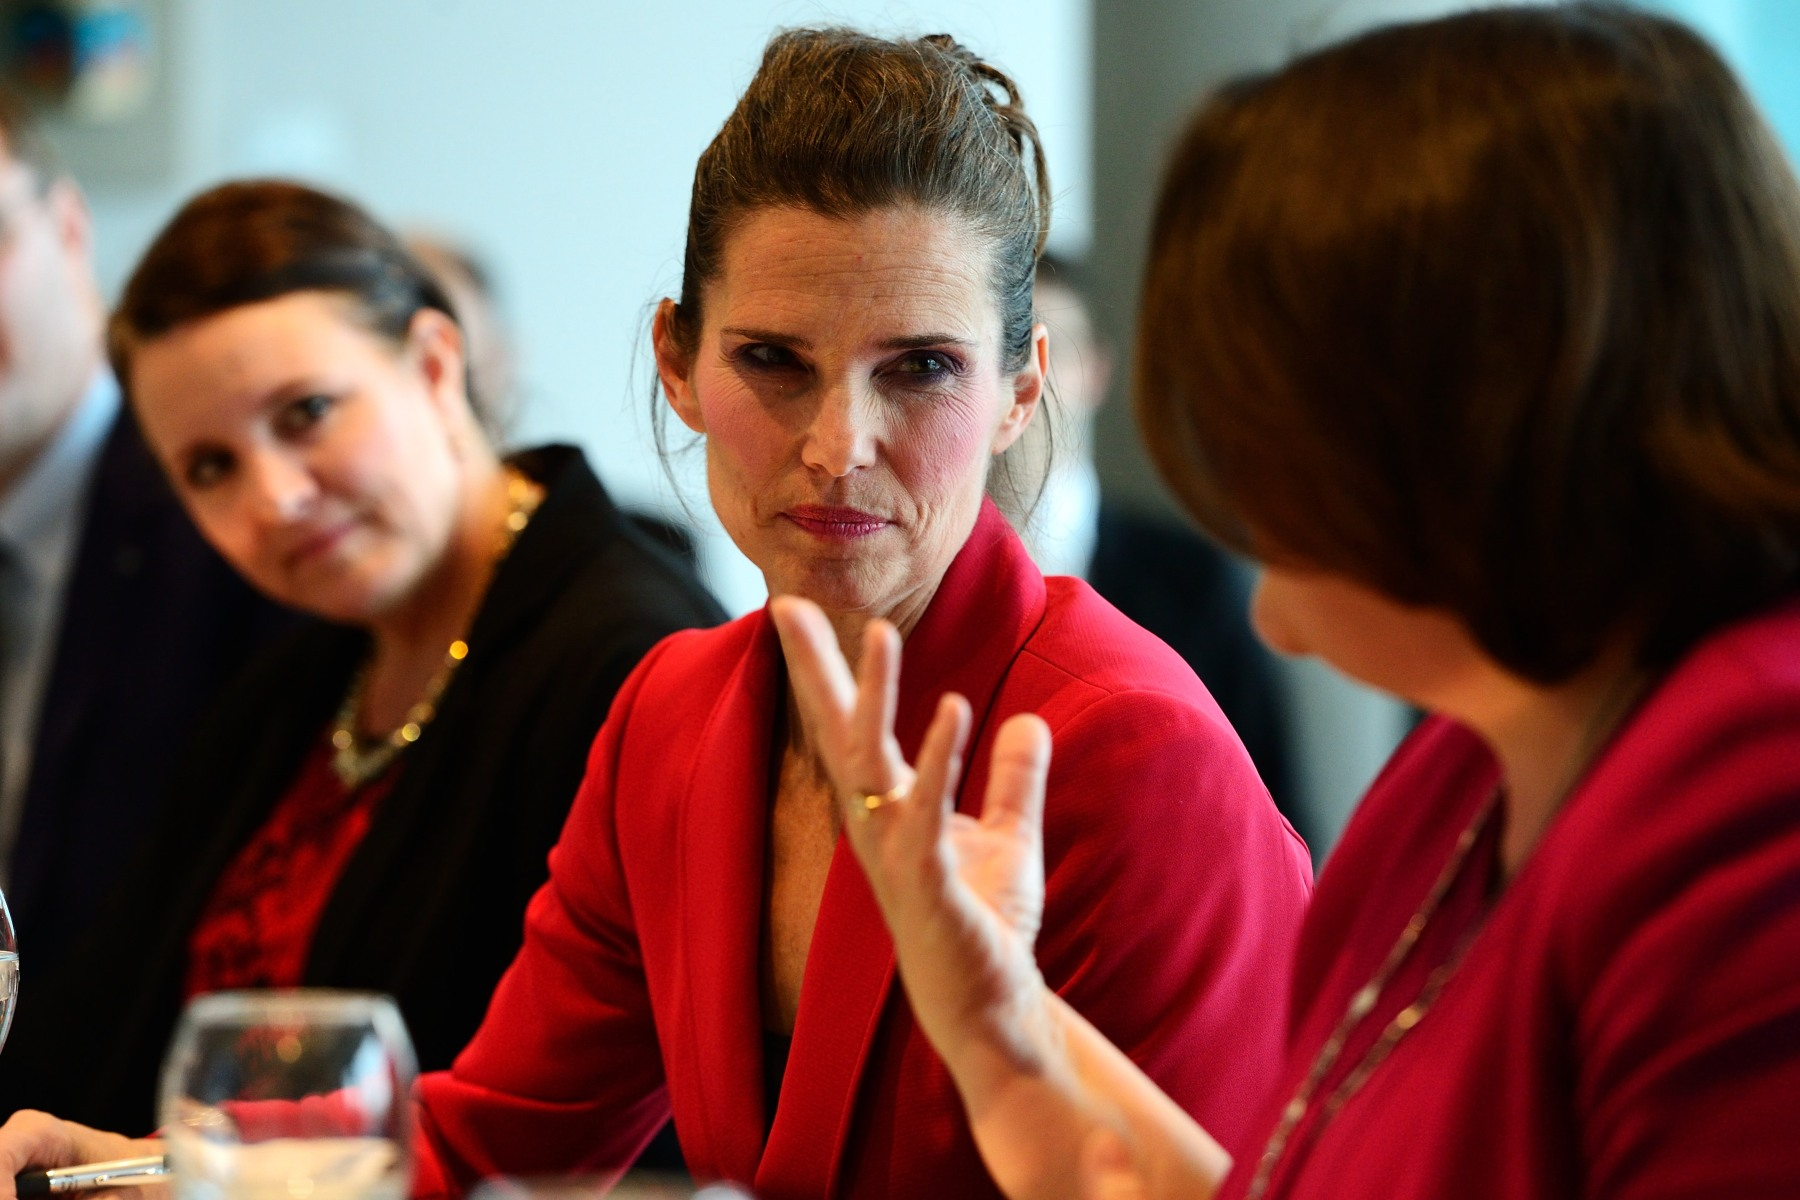 Participating in the round-table was the Honourable Kirsty Duncan, Canada's Minister of Science.